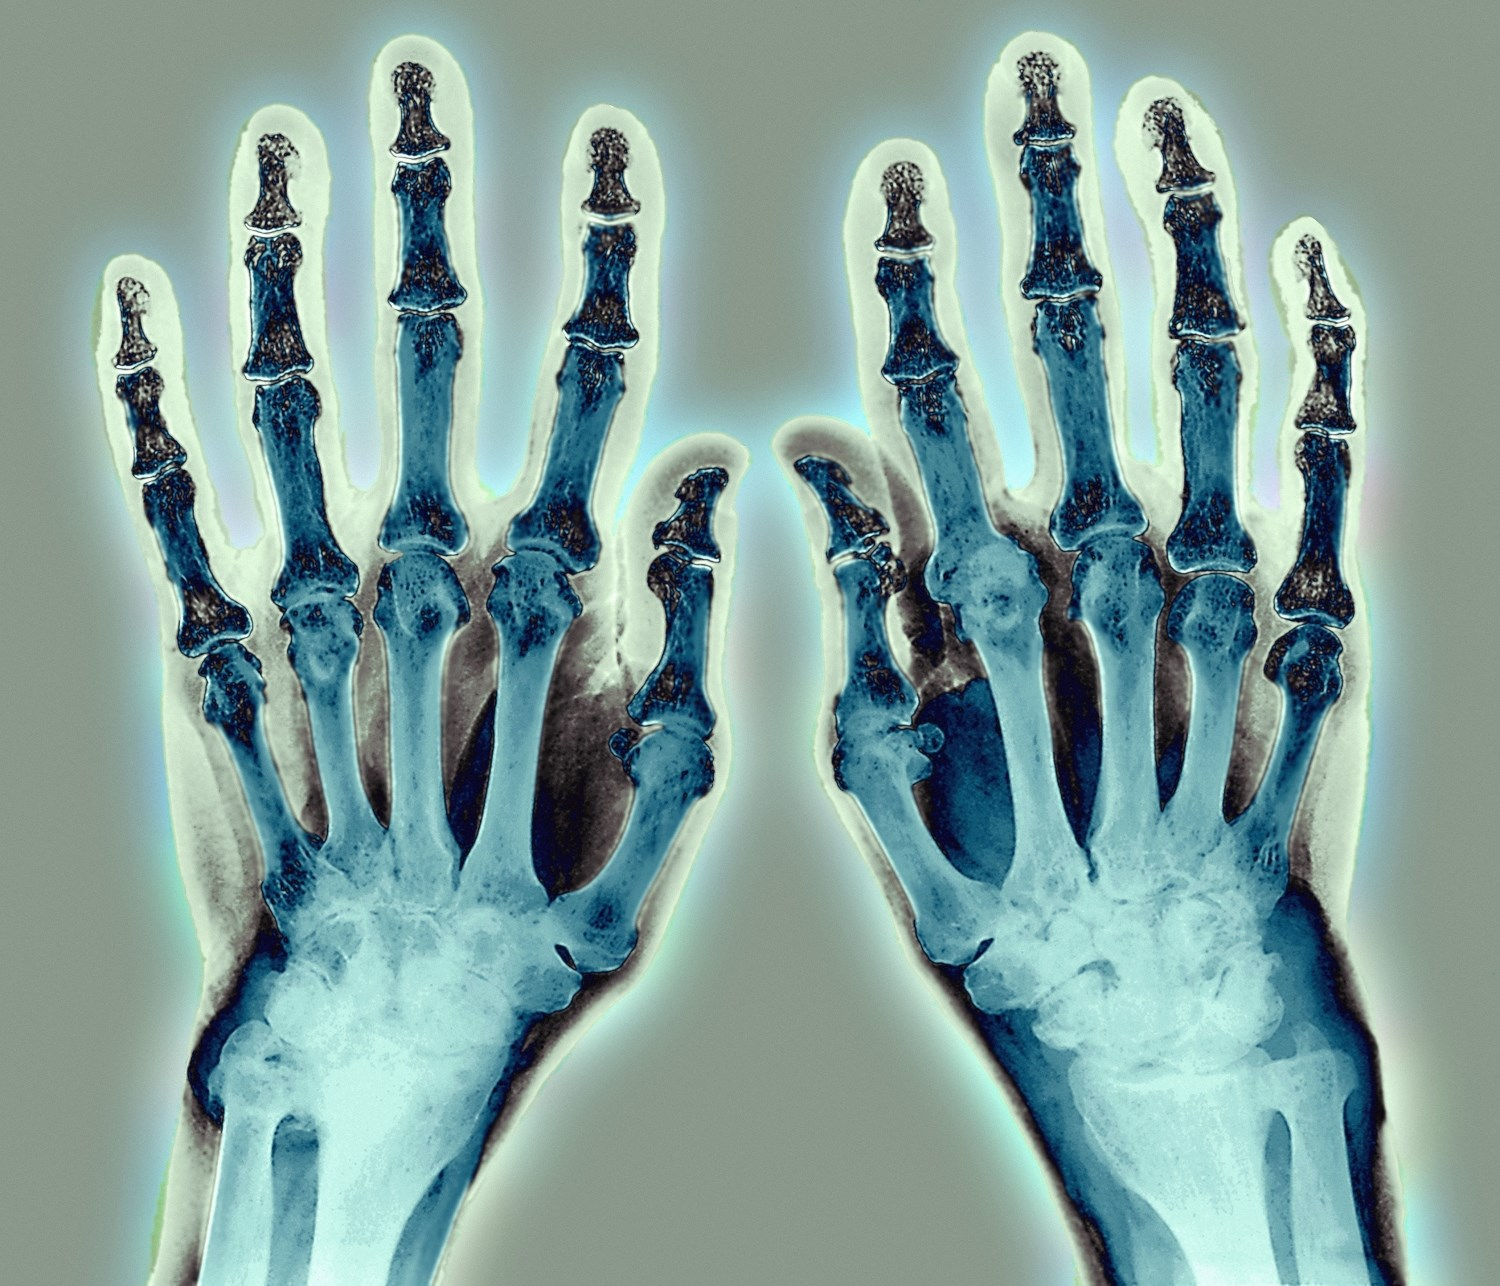 Rheumatoid Arthritis Flares Effectively Identified With OMERACT Tool